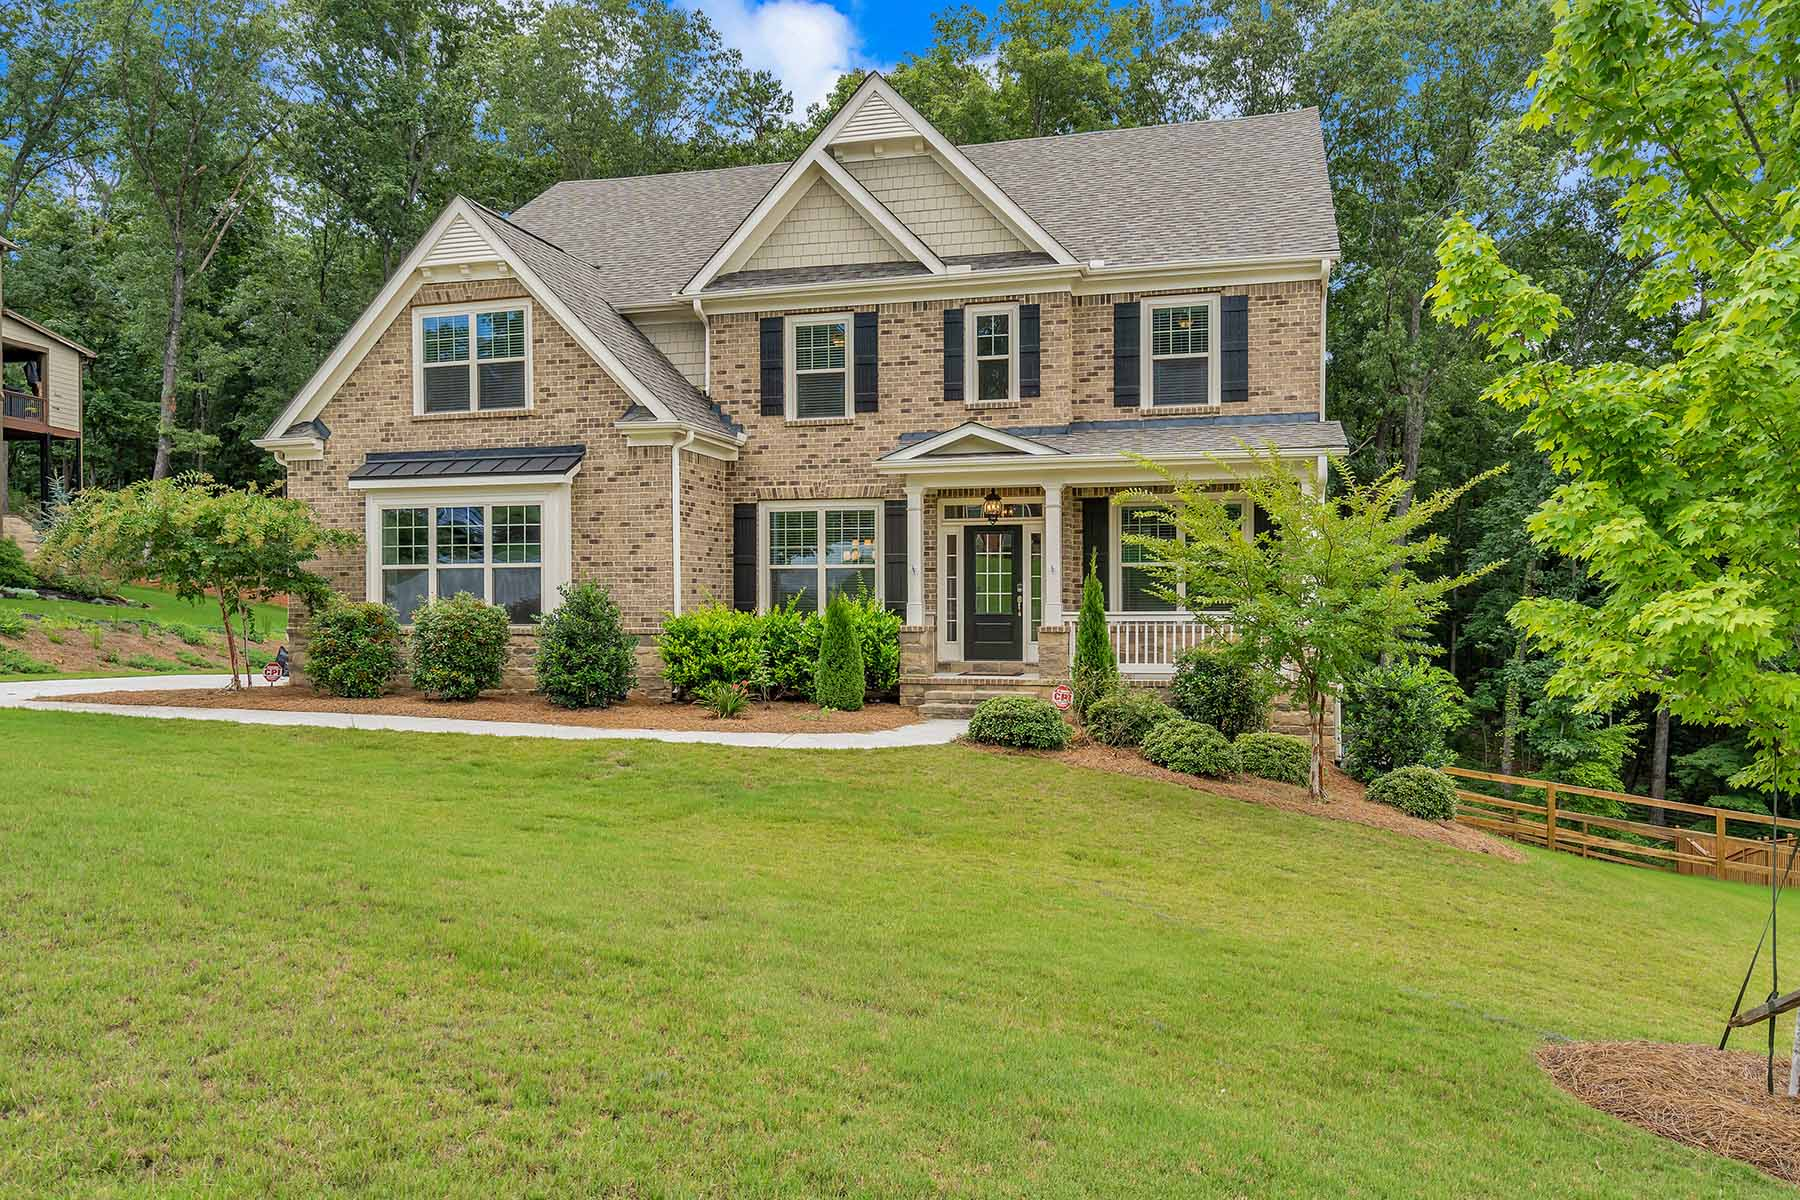 Single Family Homes for Sale at Sophisticated Brick Home in Sought-After Westpark Community 4532 Sterling Pointe Dr Kennesaw, Georgia 30152 United States